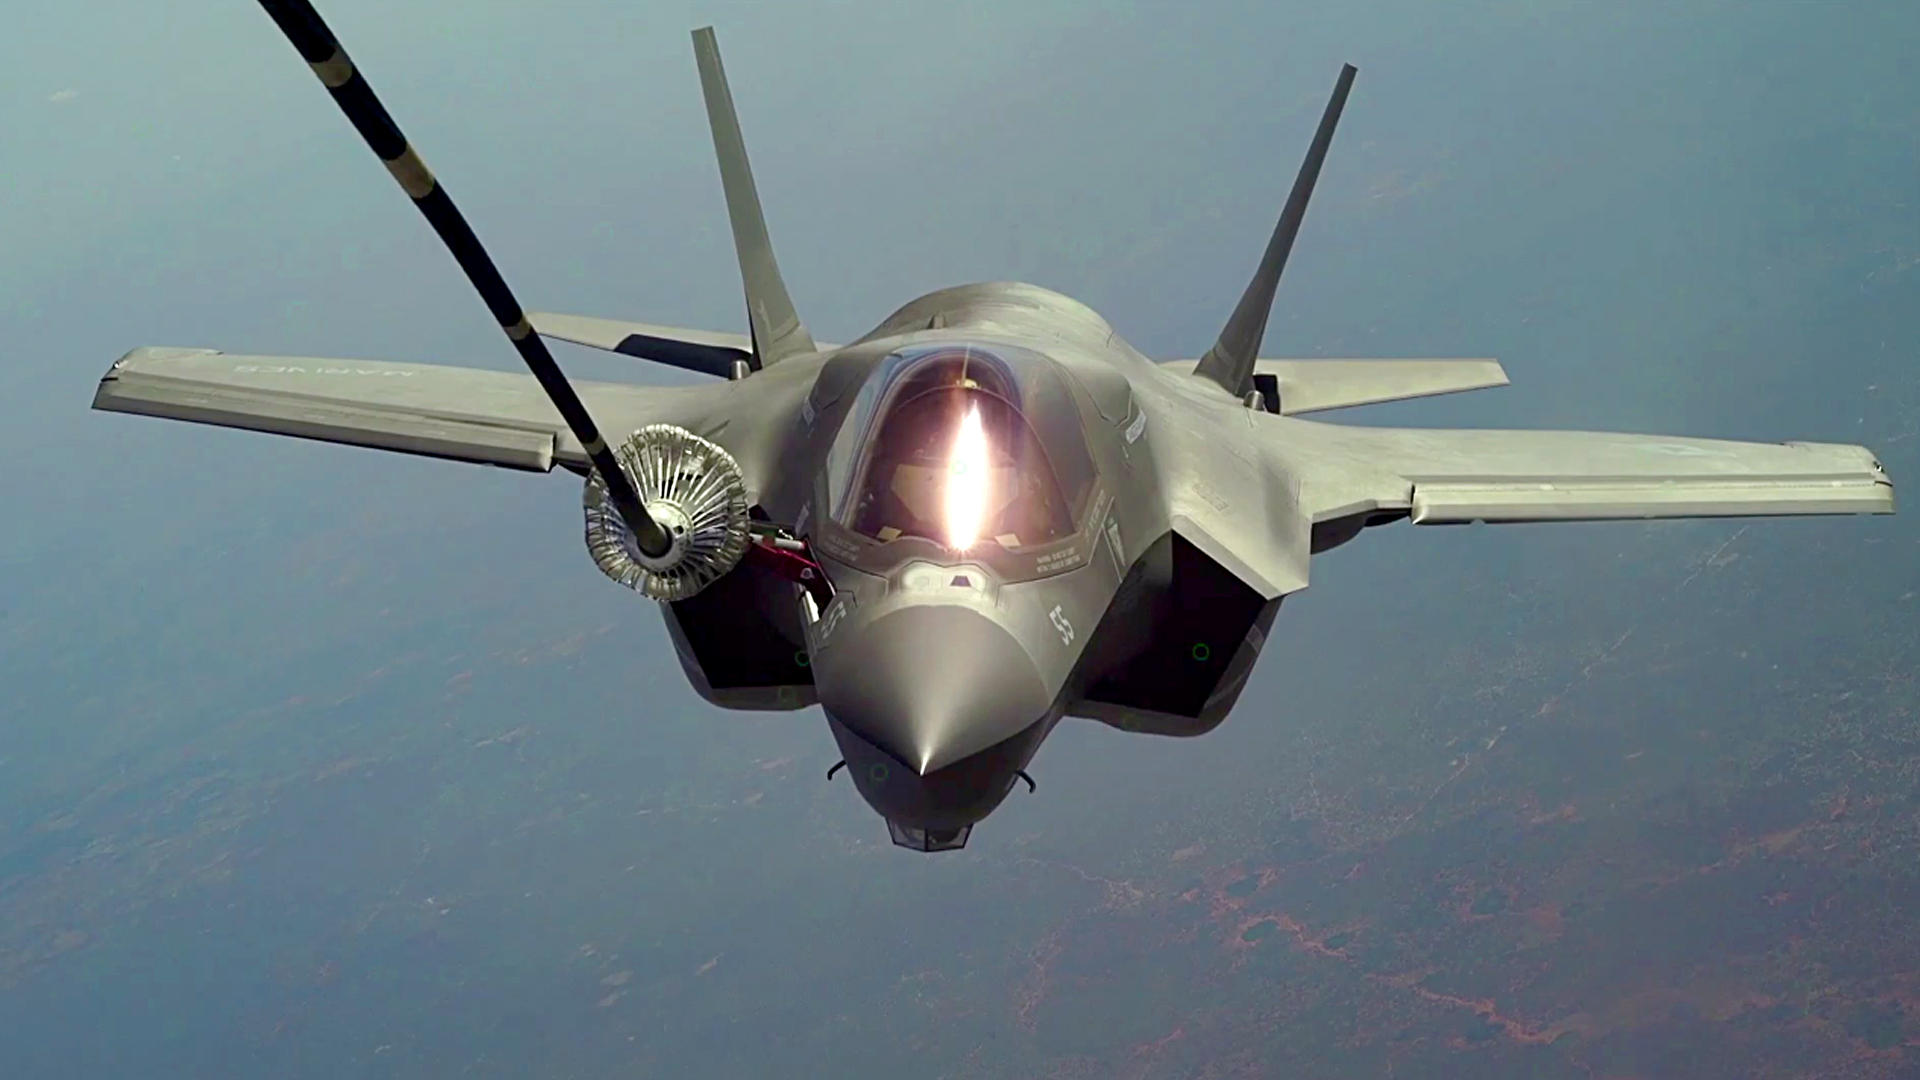 VIDEO: Mid-Air Refueling Of US Marine Corps' Fighter Jets